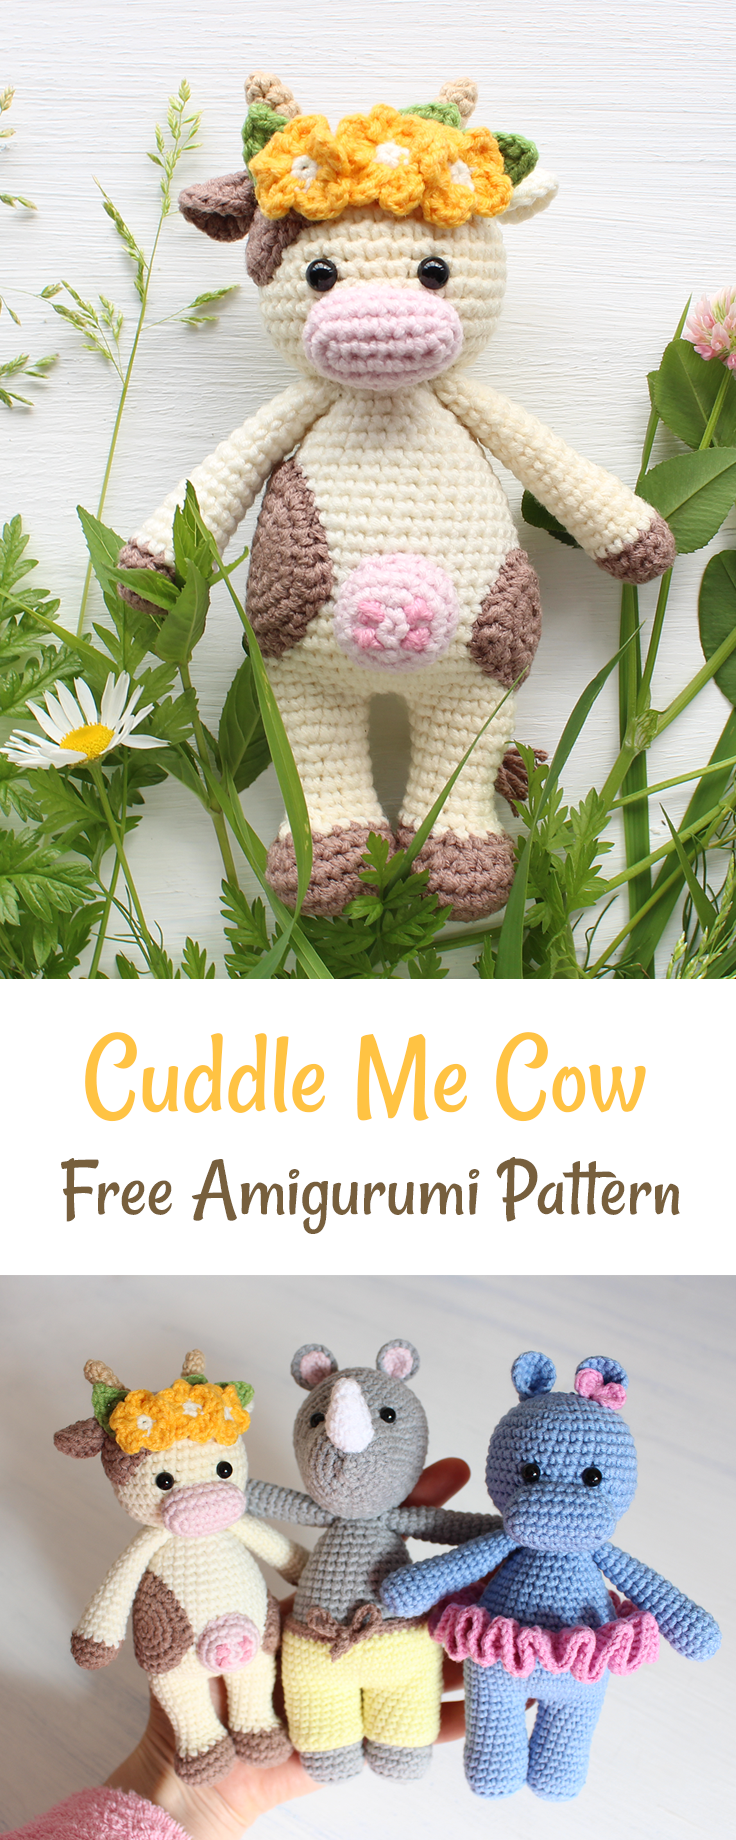 Create a friendly crochet cow using our FREE step-by-step pattern ...